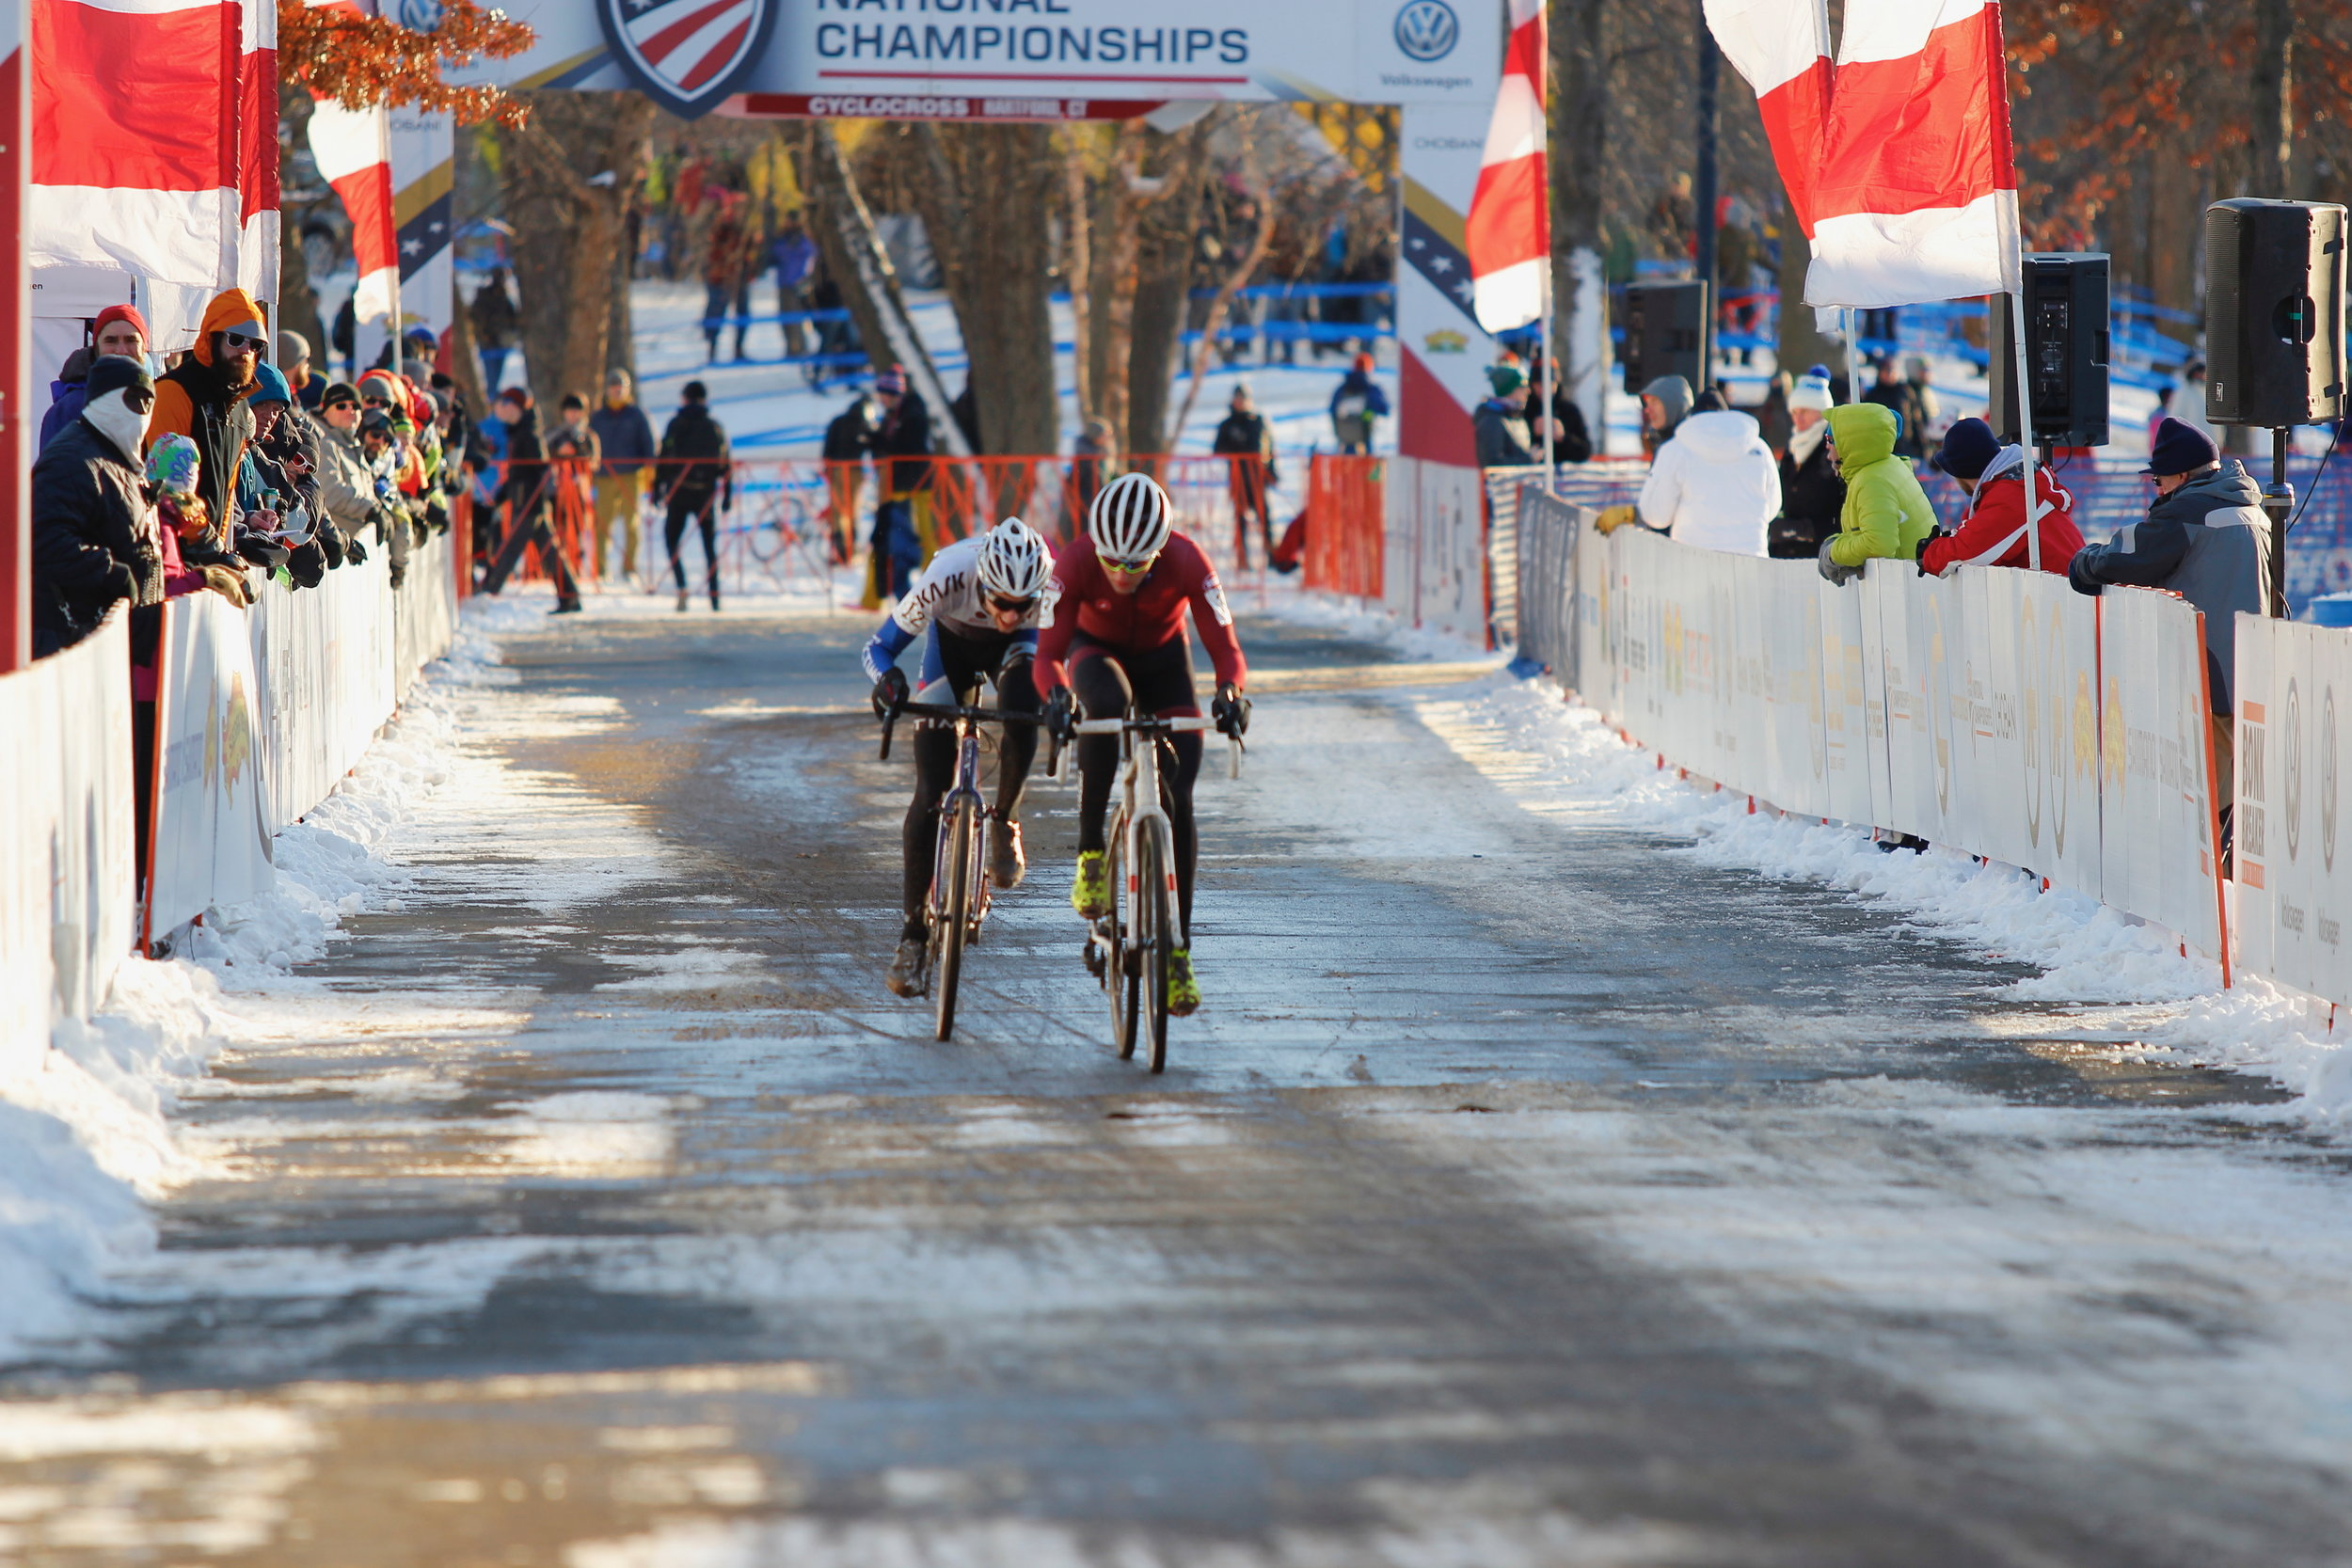 With six laps to go, Jack Kisseberth was on the wheel of last year's U23 national champion Tobin Ortenblad (Santa Cruz Racing). Kisseberth passed Ortenblad and held him off to finish eight seconds ahead in fourth place. Photo by Vicky Sama.